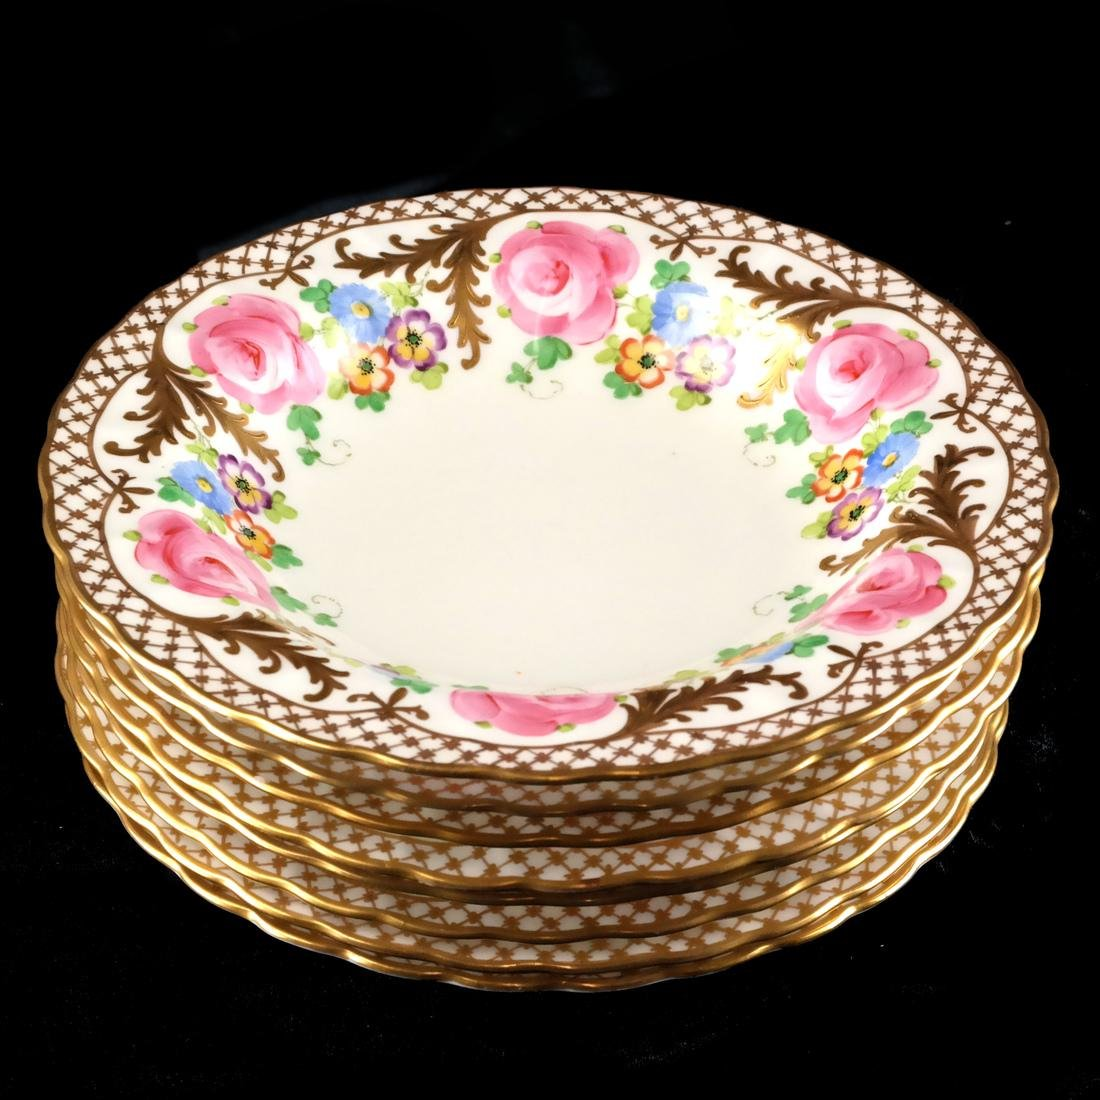 8 Crown, England Floral Decorated Bowls - 2